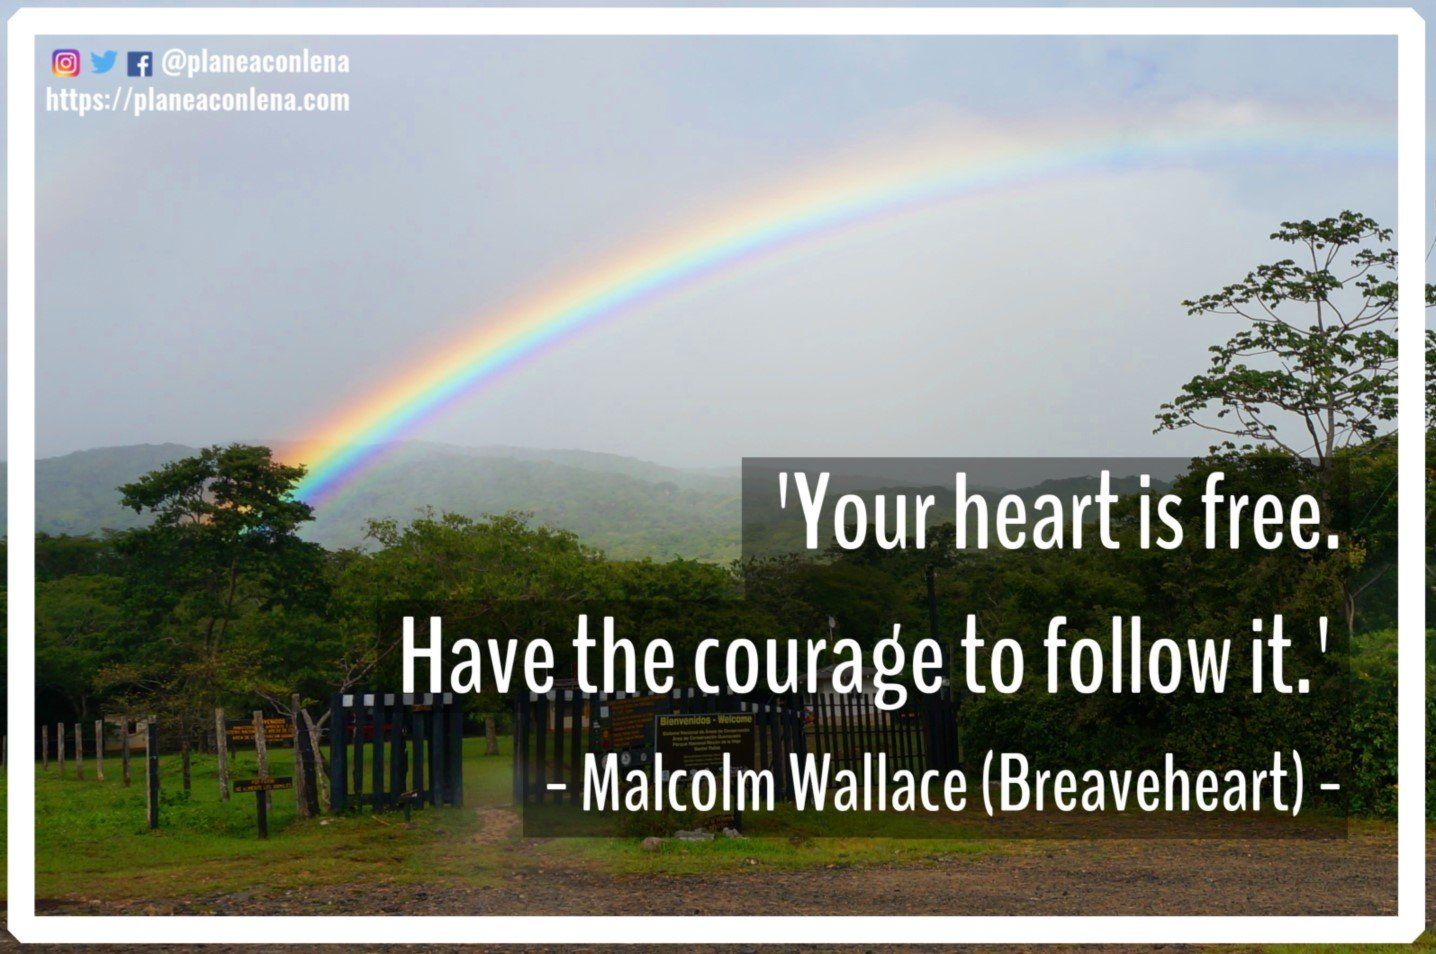 'Your heart is free. Have the courage to follow it. '- Malcolm Wallace (Braveheart)